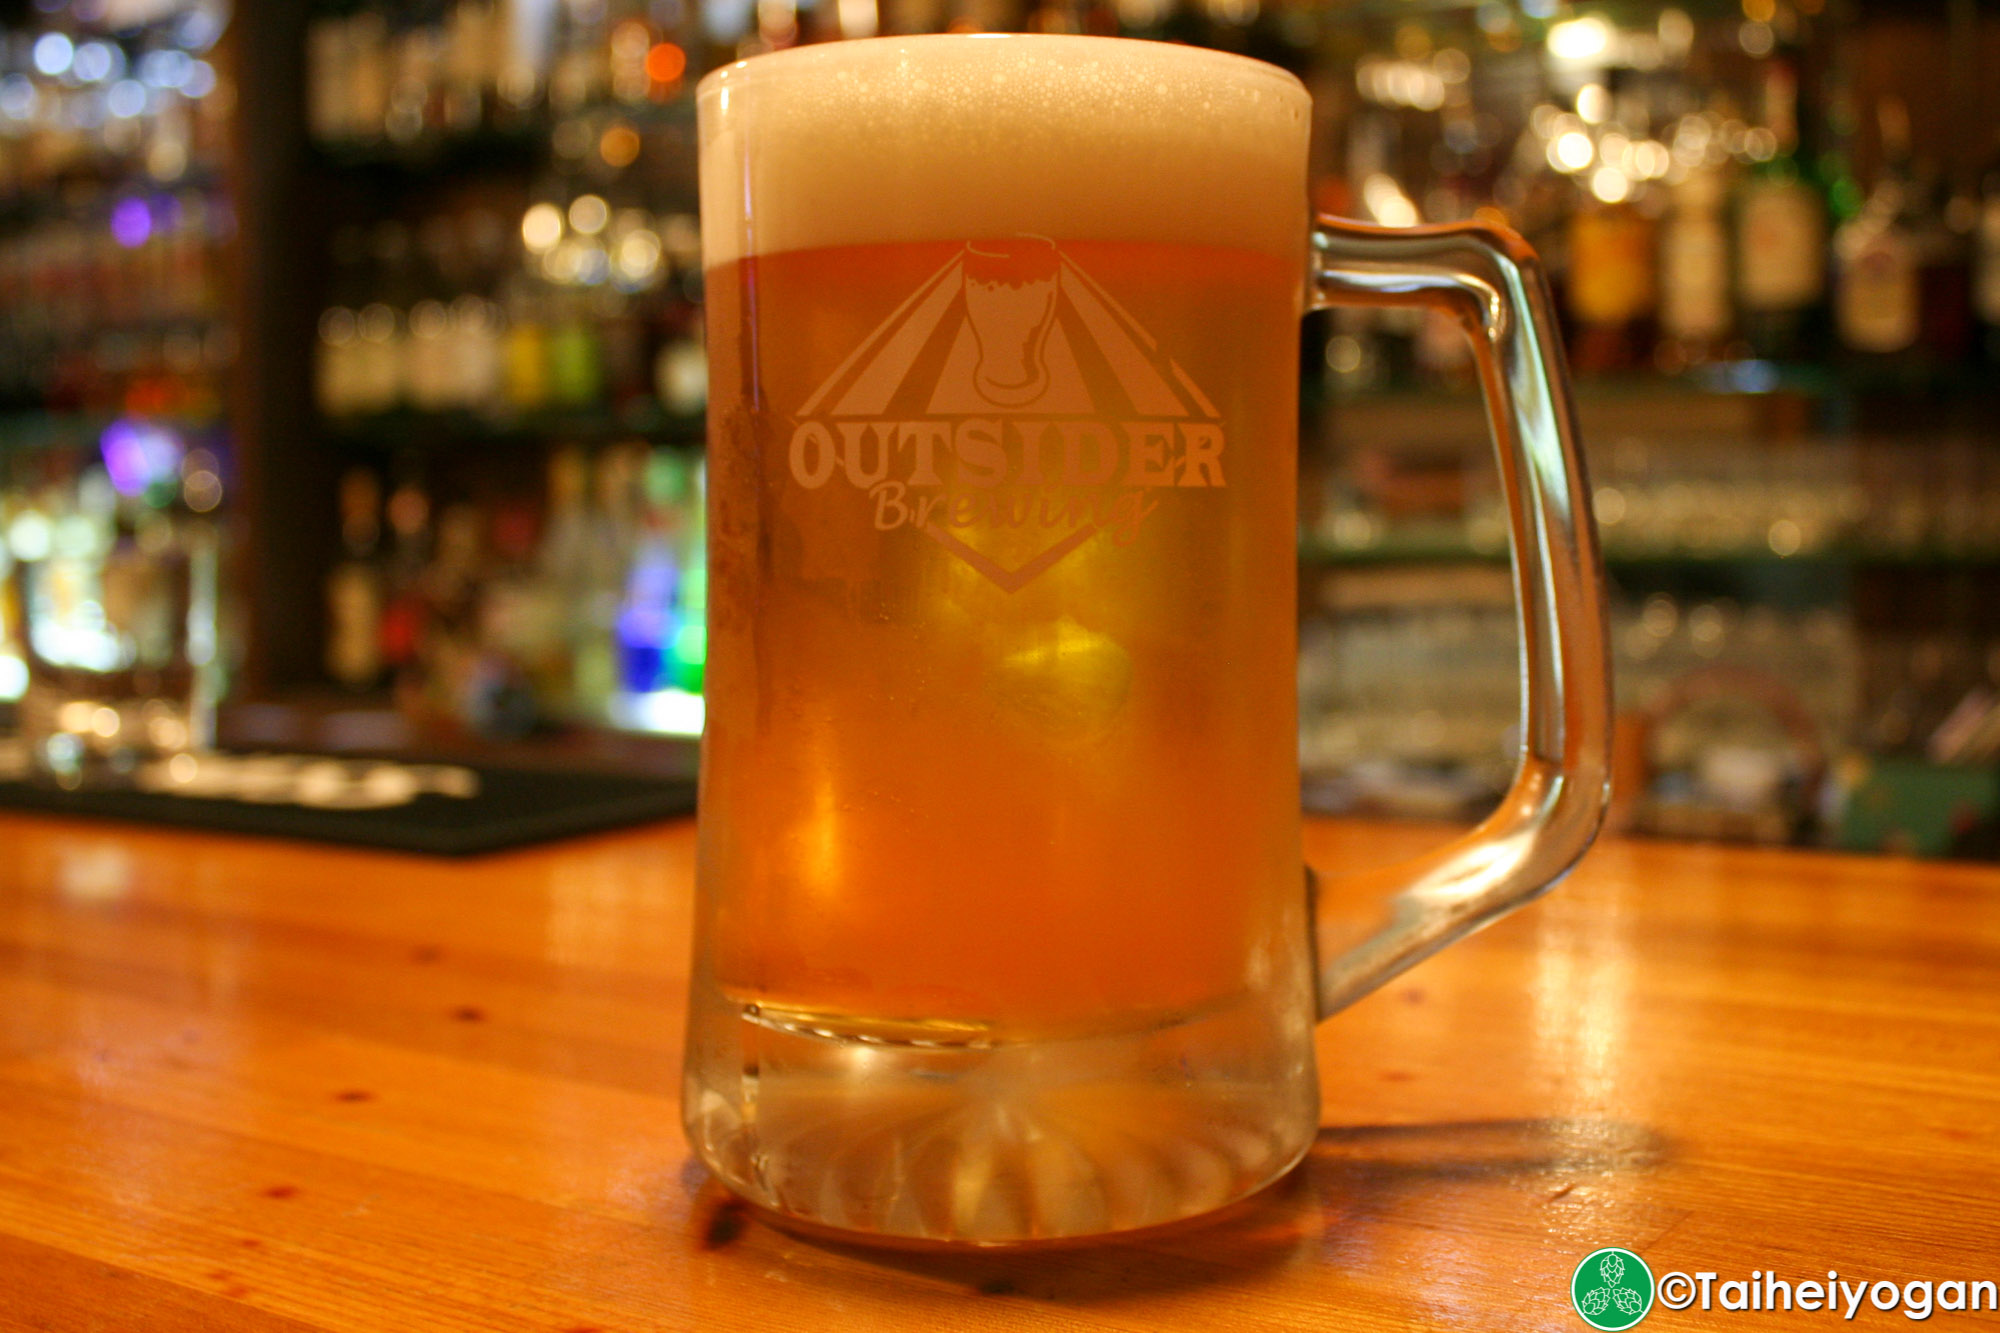 The Vault - Menu - Outsider Brewing Craft Beer